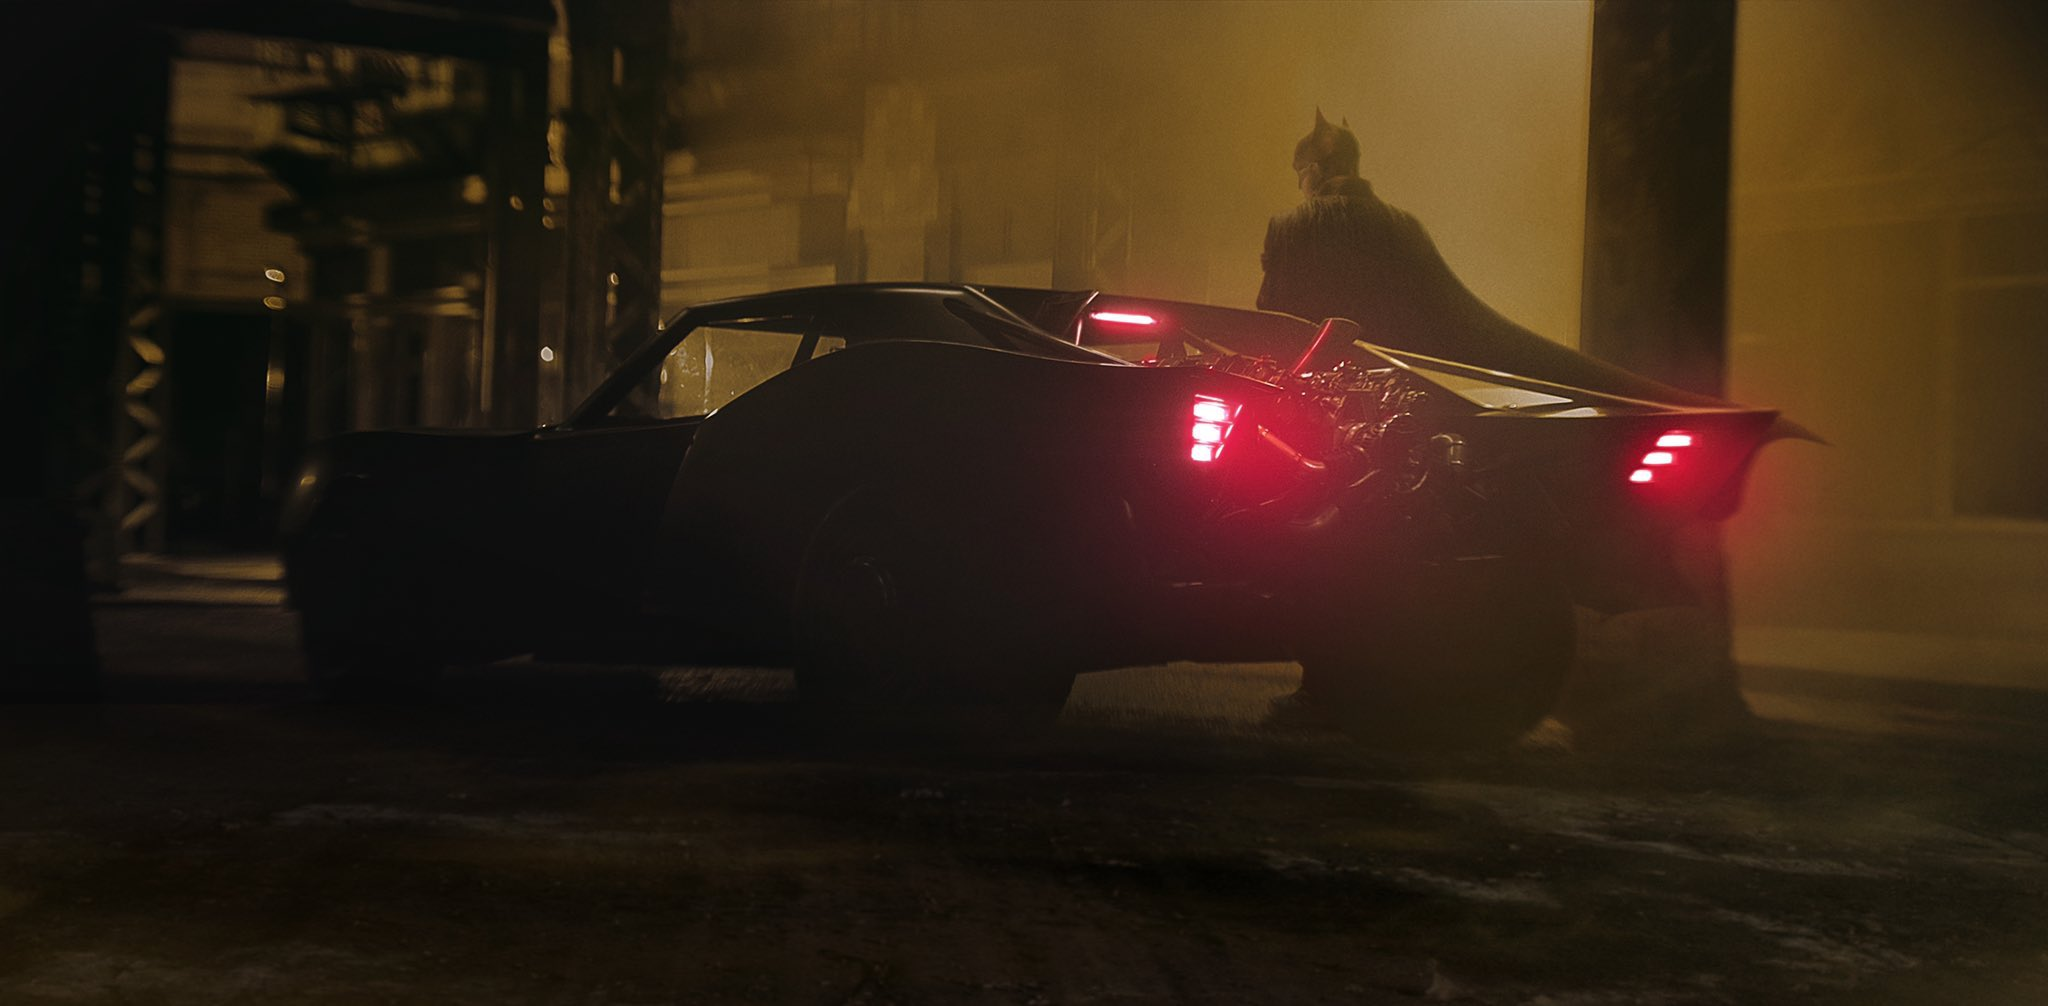 Matt Reeves The Batman Batsuit Batmobile costume car warner robert pattinson